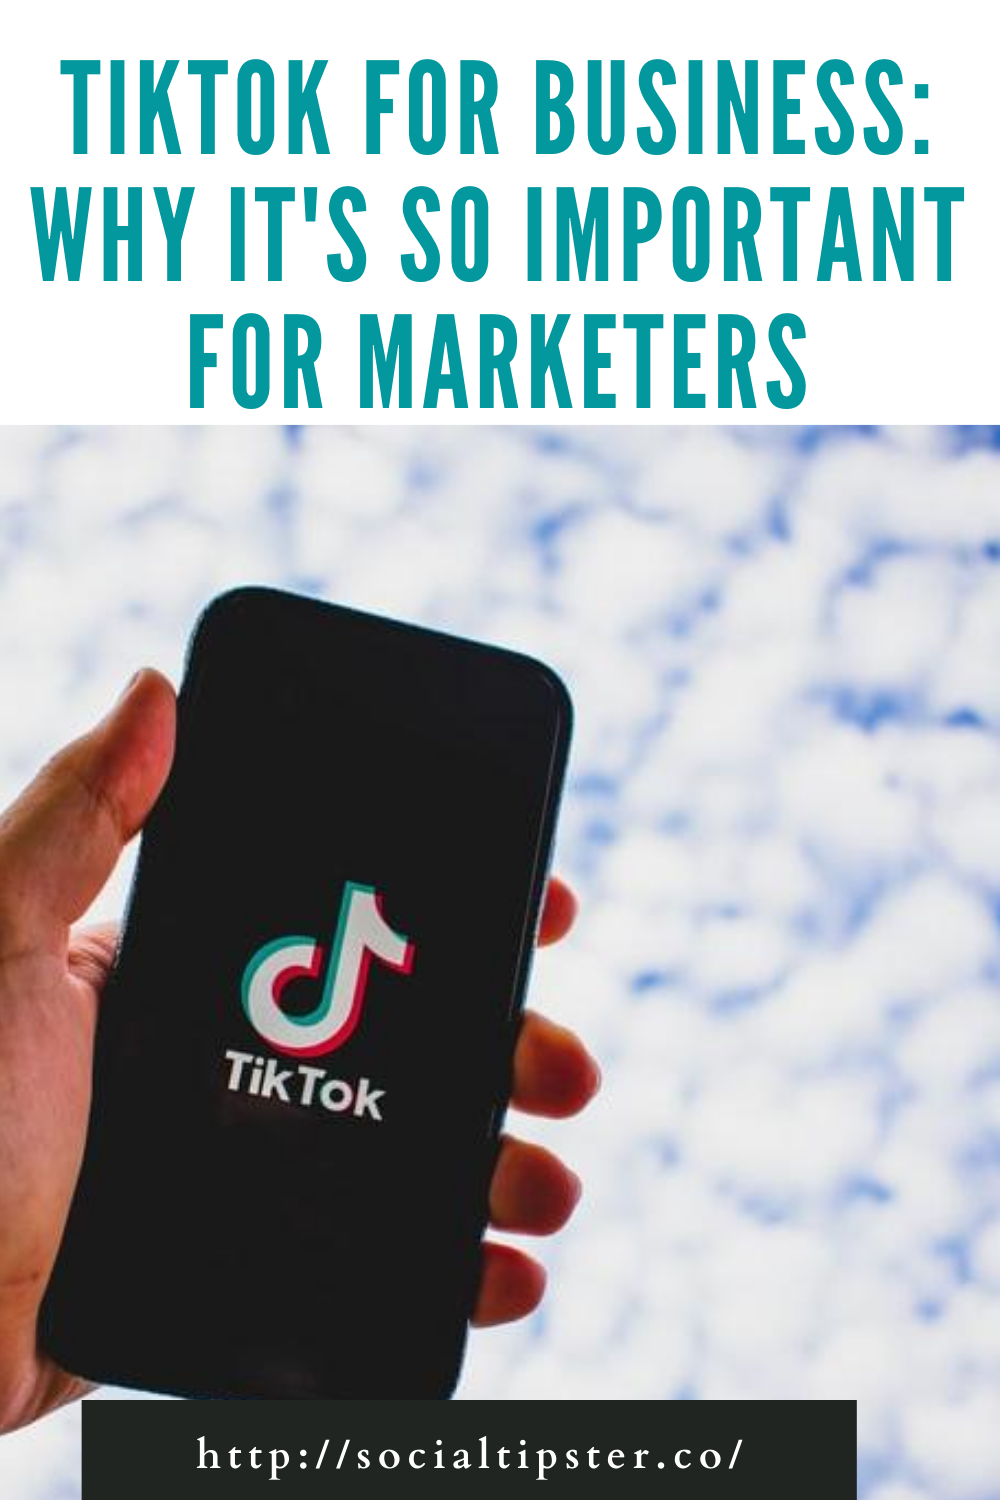 TikTok for Business: Why it's so important for marketers